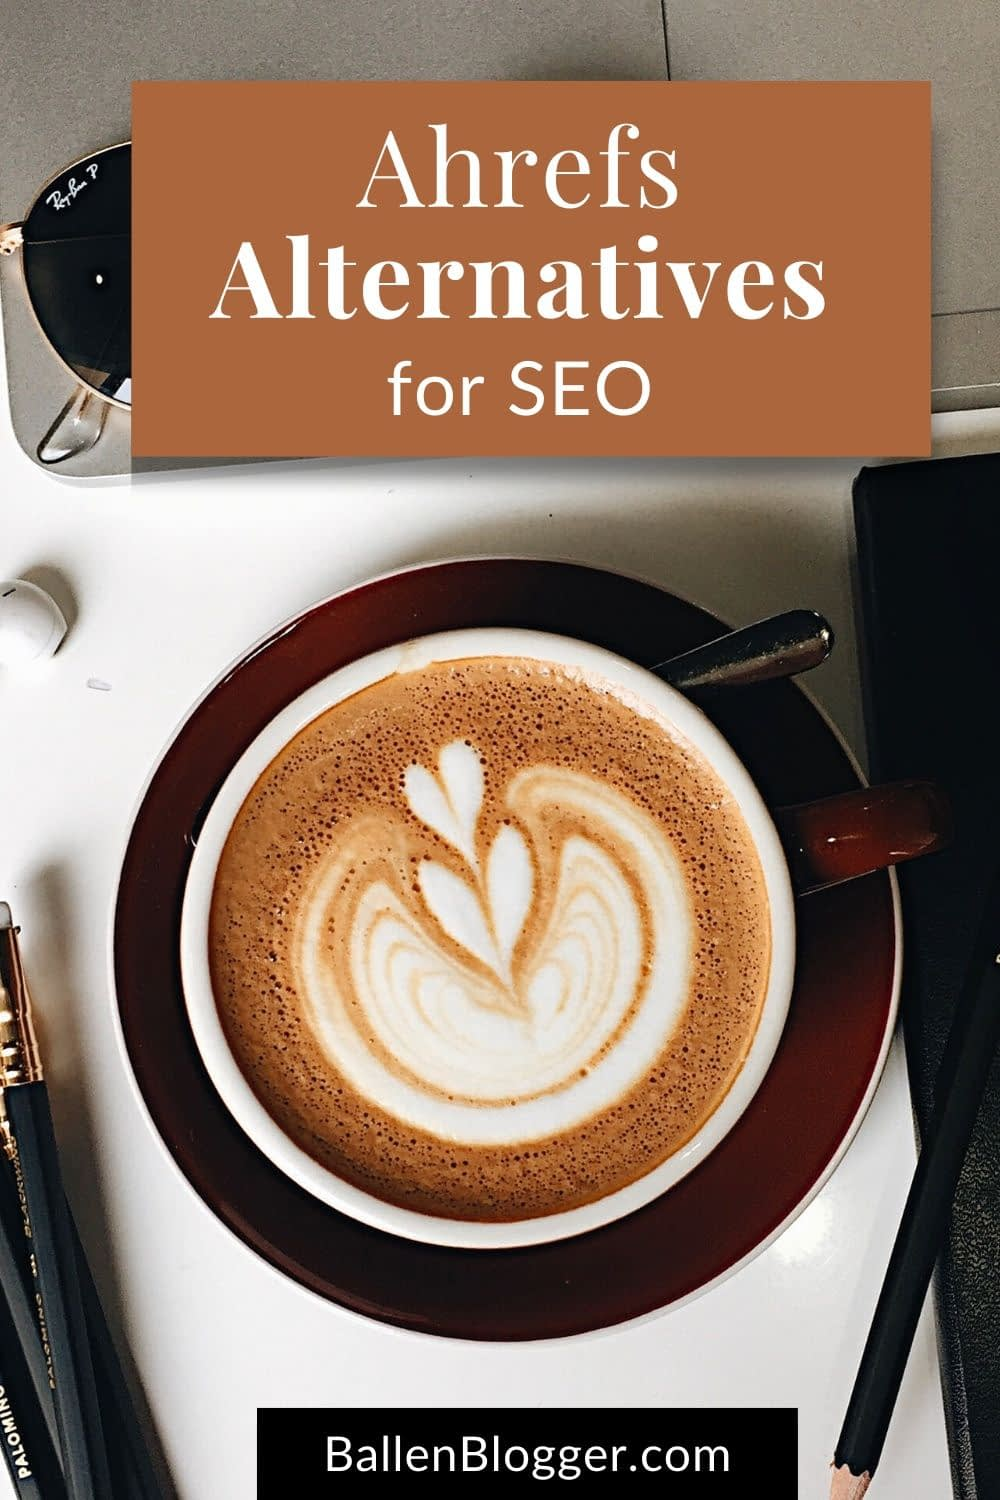 While Ahrefs is one of the leading keyword research tools, some people might not like the price or style of Ahrefs. With this in mind, there are several great Ahrefs alternatives worth exploring.